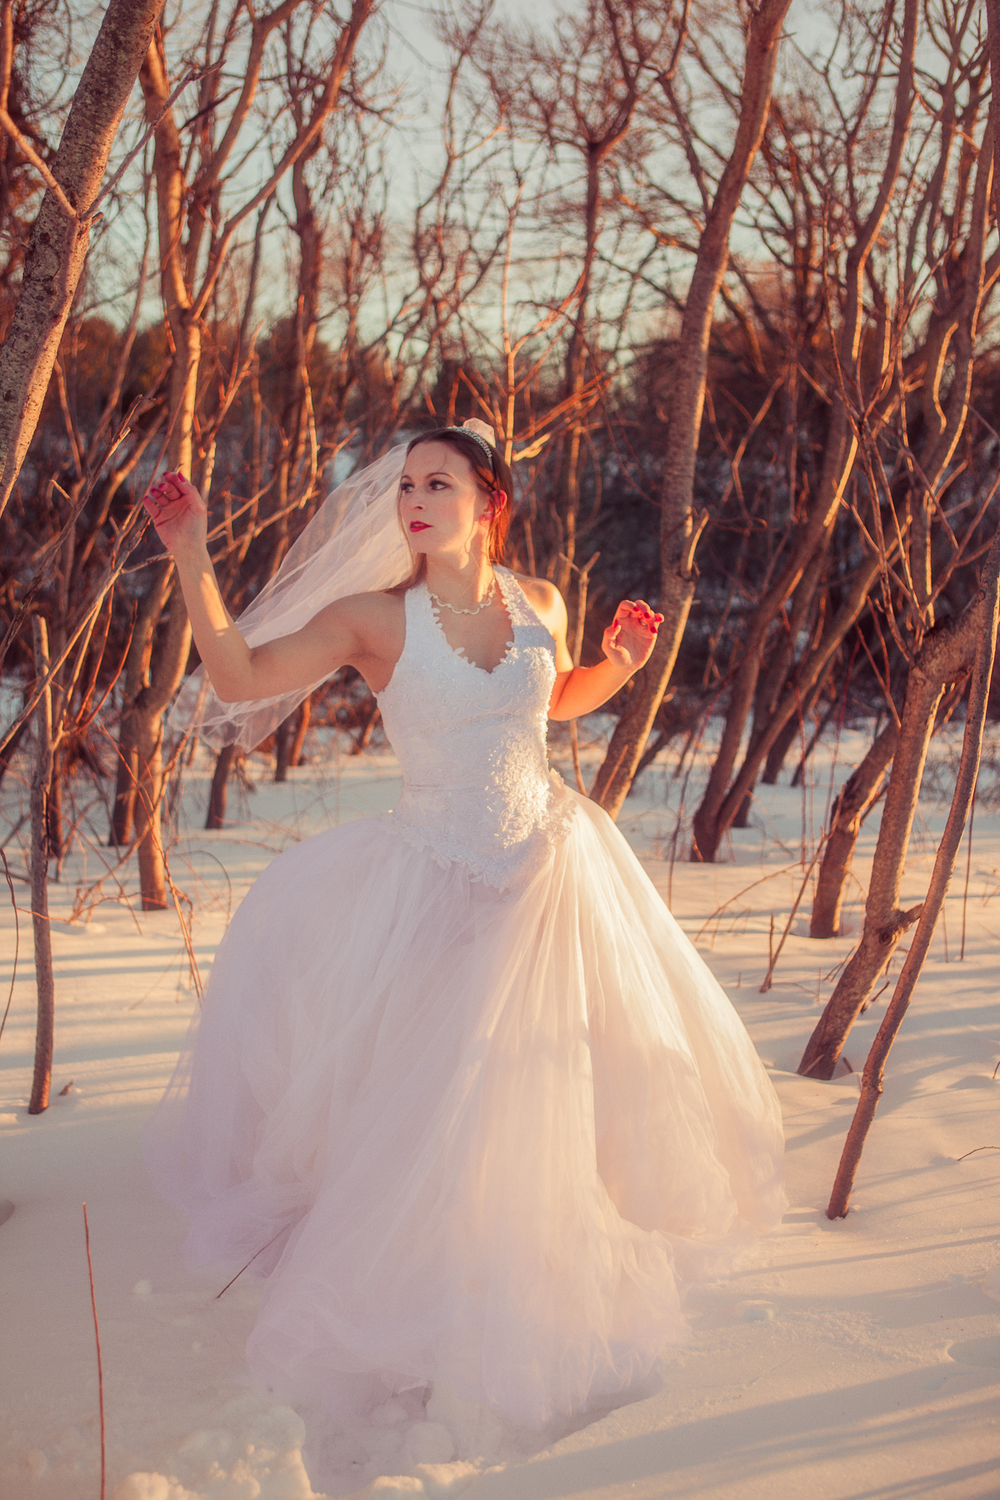 A winter bridal session in MIddleboro, Massachusetts.